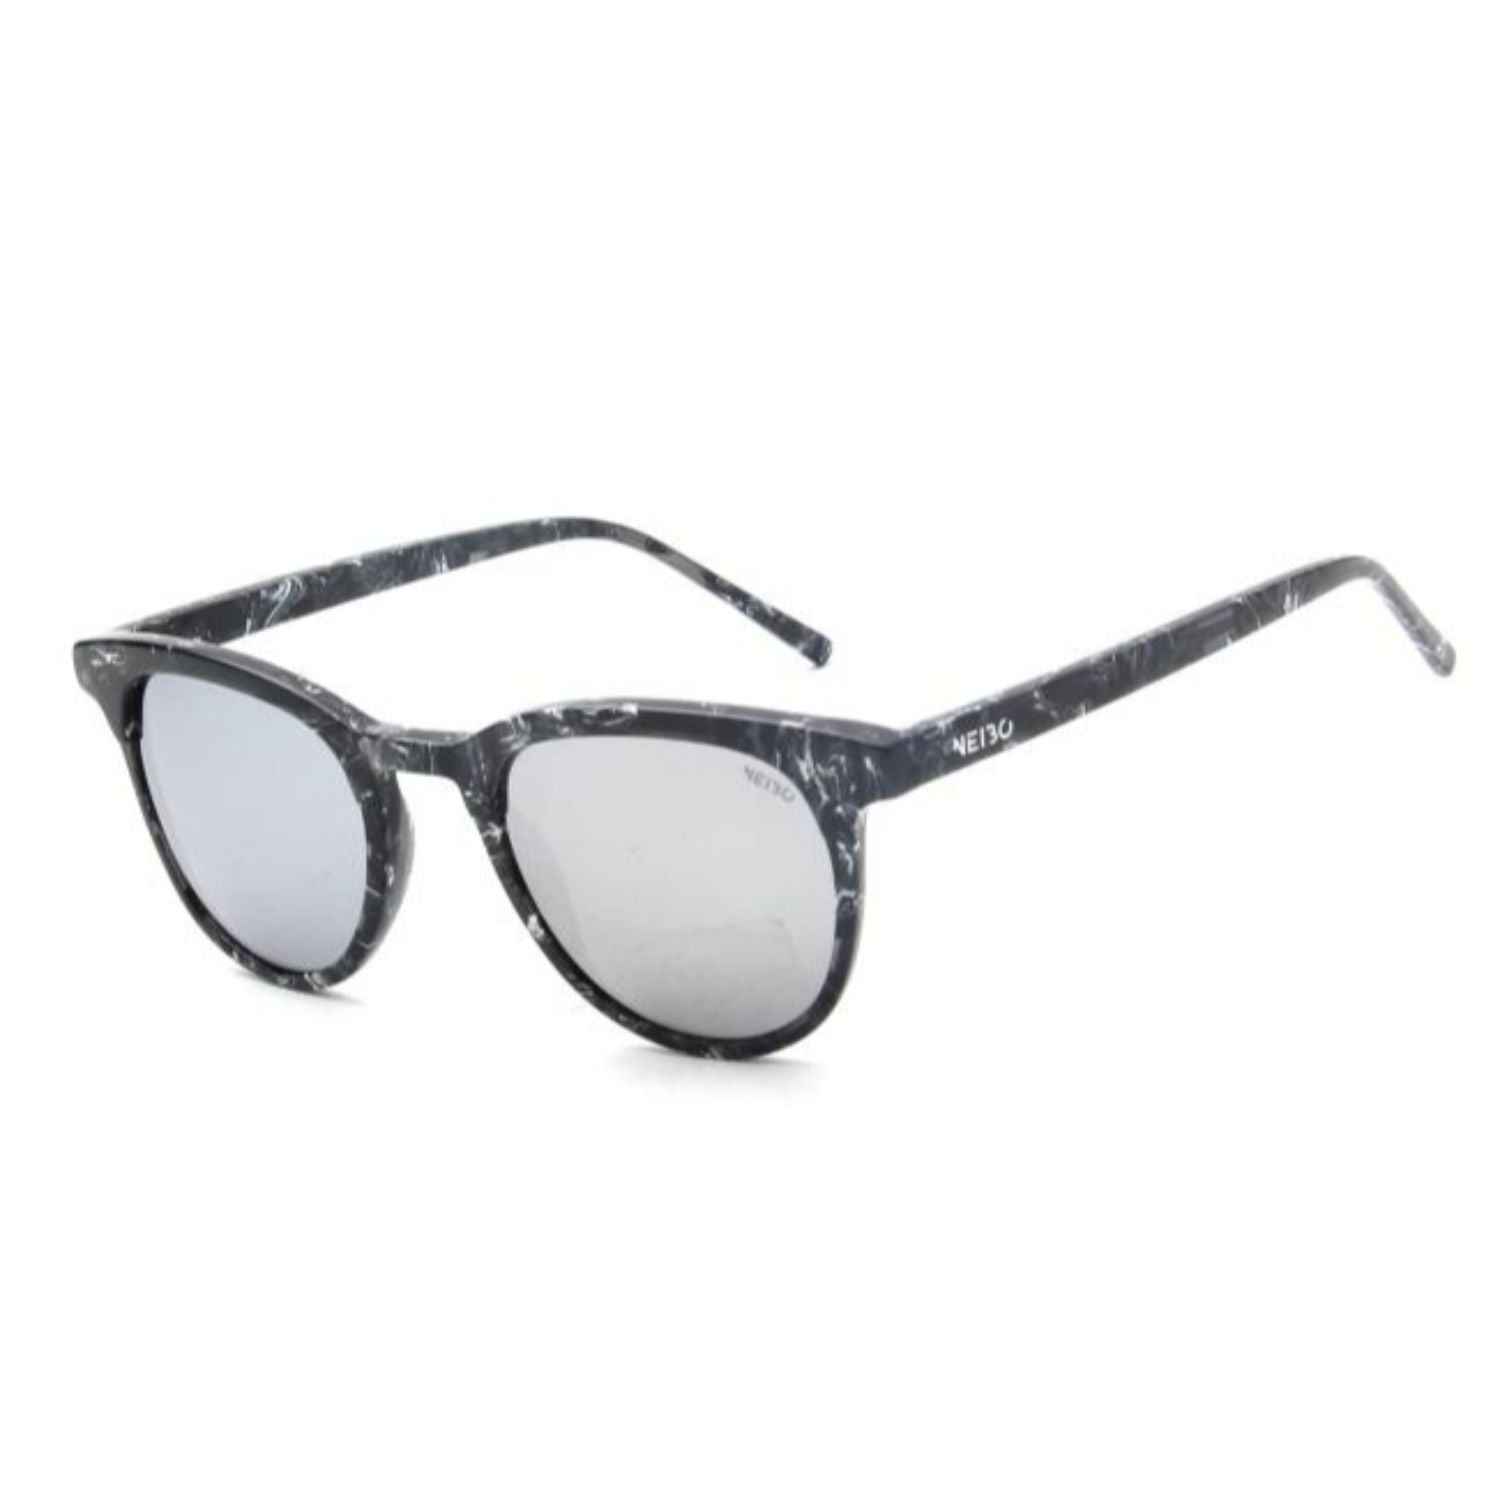 SA11 - Classic Circle Round Unisex Fashion Designer Sunglasses